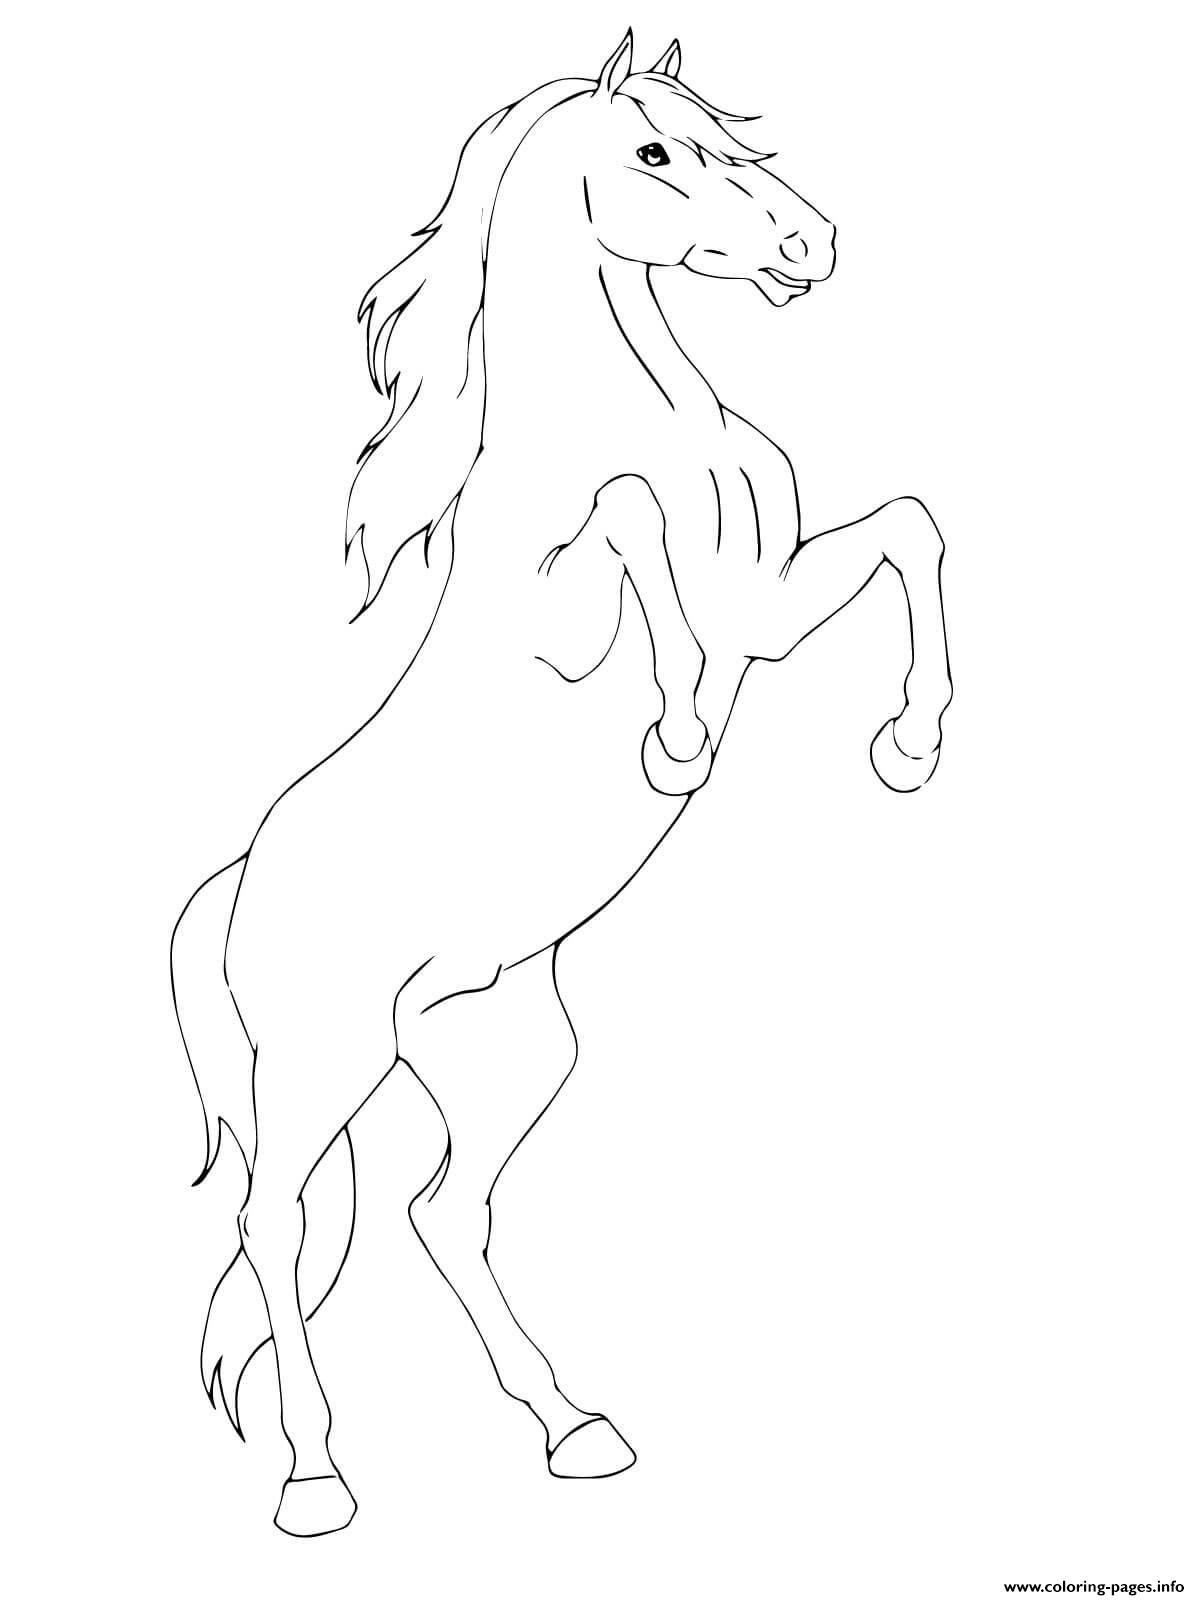 Printable Horse Coloring Page Youngandtae Com Horse Coloring Pages Horse Coloring Animal Coloring Pages [ 1600 x 1200 Pixel ]